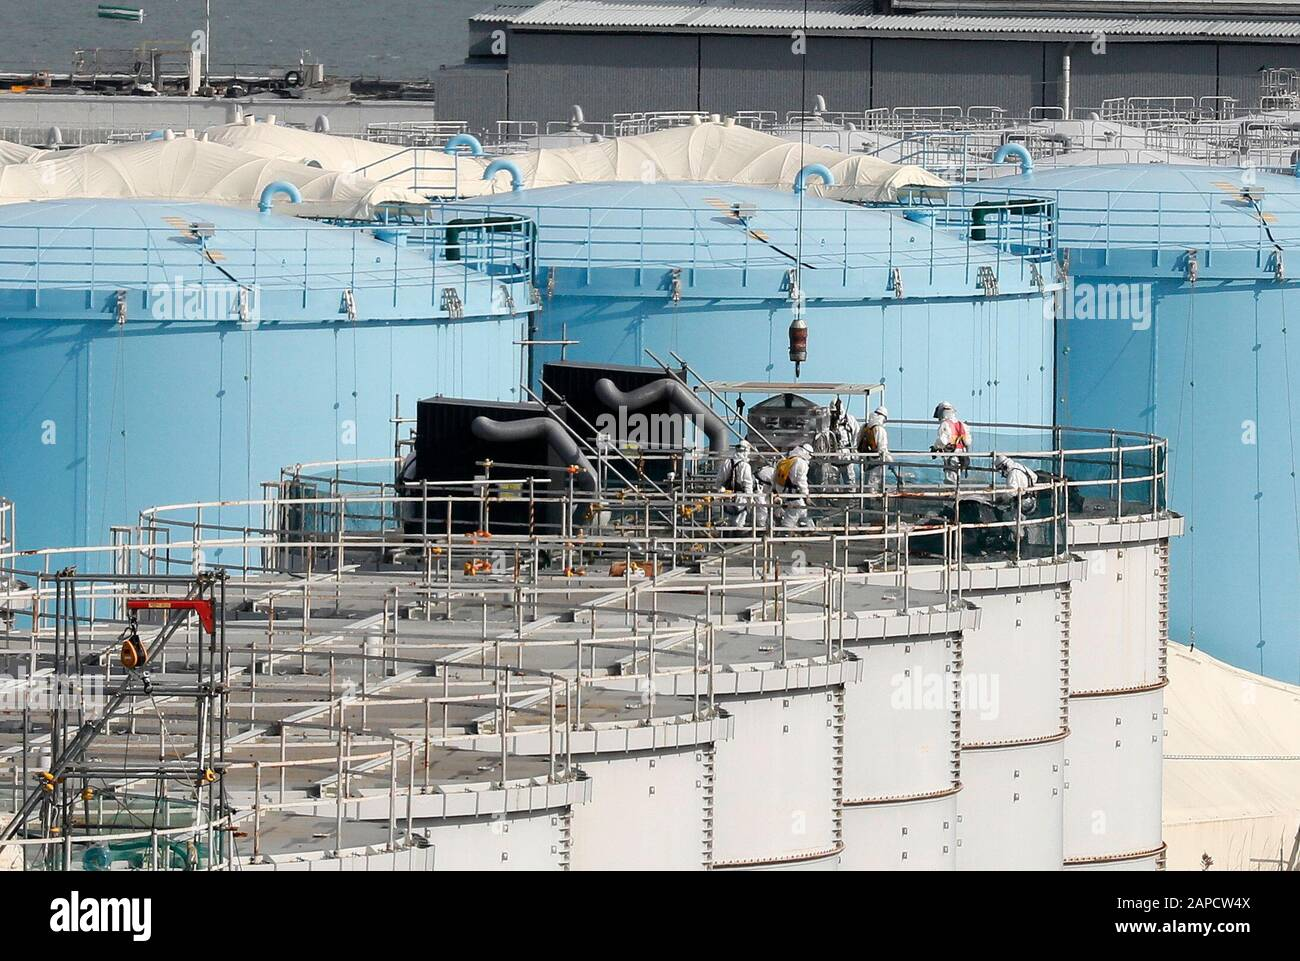 Okuma, Fukushima, Japan. 22nd Jan, 2020. Workers demolish old storage tanks included water processed in ALPS(Multi-nuclide retrieval equipment) at tsunami-devastated Tokyo Electric Power Company (TEPCO) Fukushima Daiichi Nuclear Power Plant in Okuma town, Fukushima Prefecture, 22 January 2020 after transferring to new tanks. The storage tanks including water processed in the ALPS will be full around summer of 2022, TEPCO has told. Japanese government will need to decide soon how manage the processed water still including tritium. Credit: Kimimasa Mayama/POOL/ZUMA Wire/Alamy Live News Stock Photo